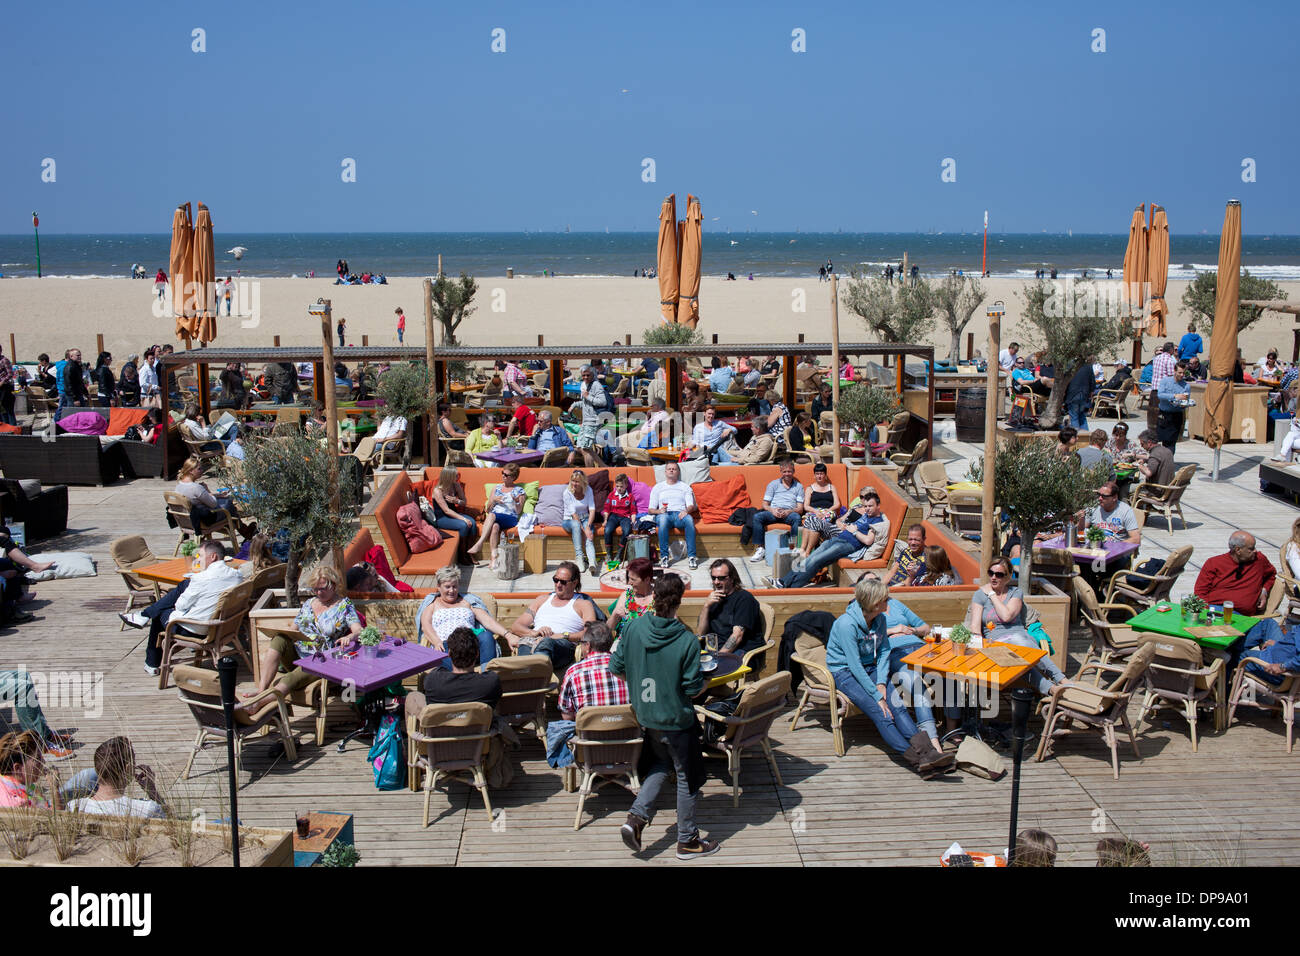 El Nino Scheveningen El Nino Beach Club Cafe Restaurant In Scheveningen Area By